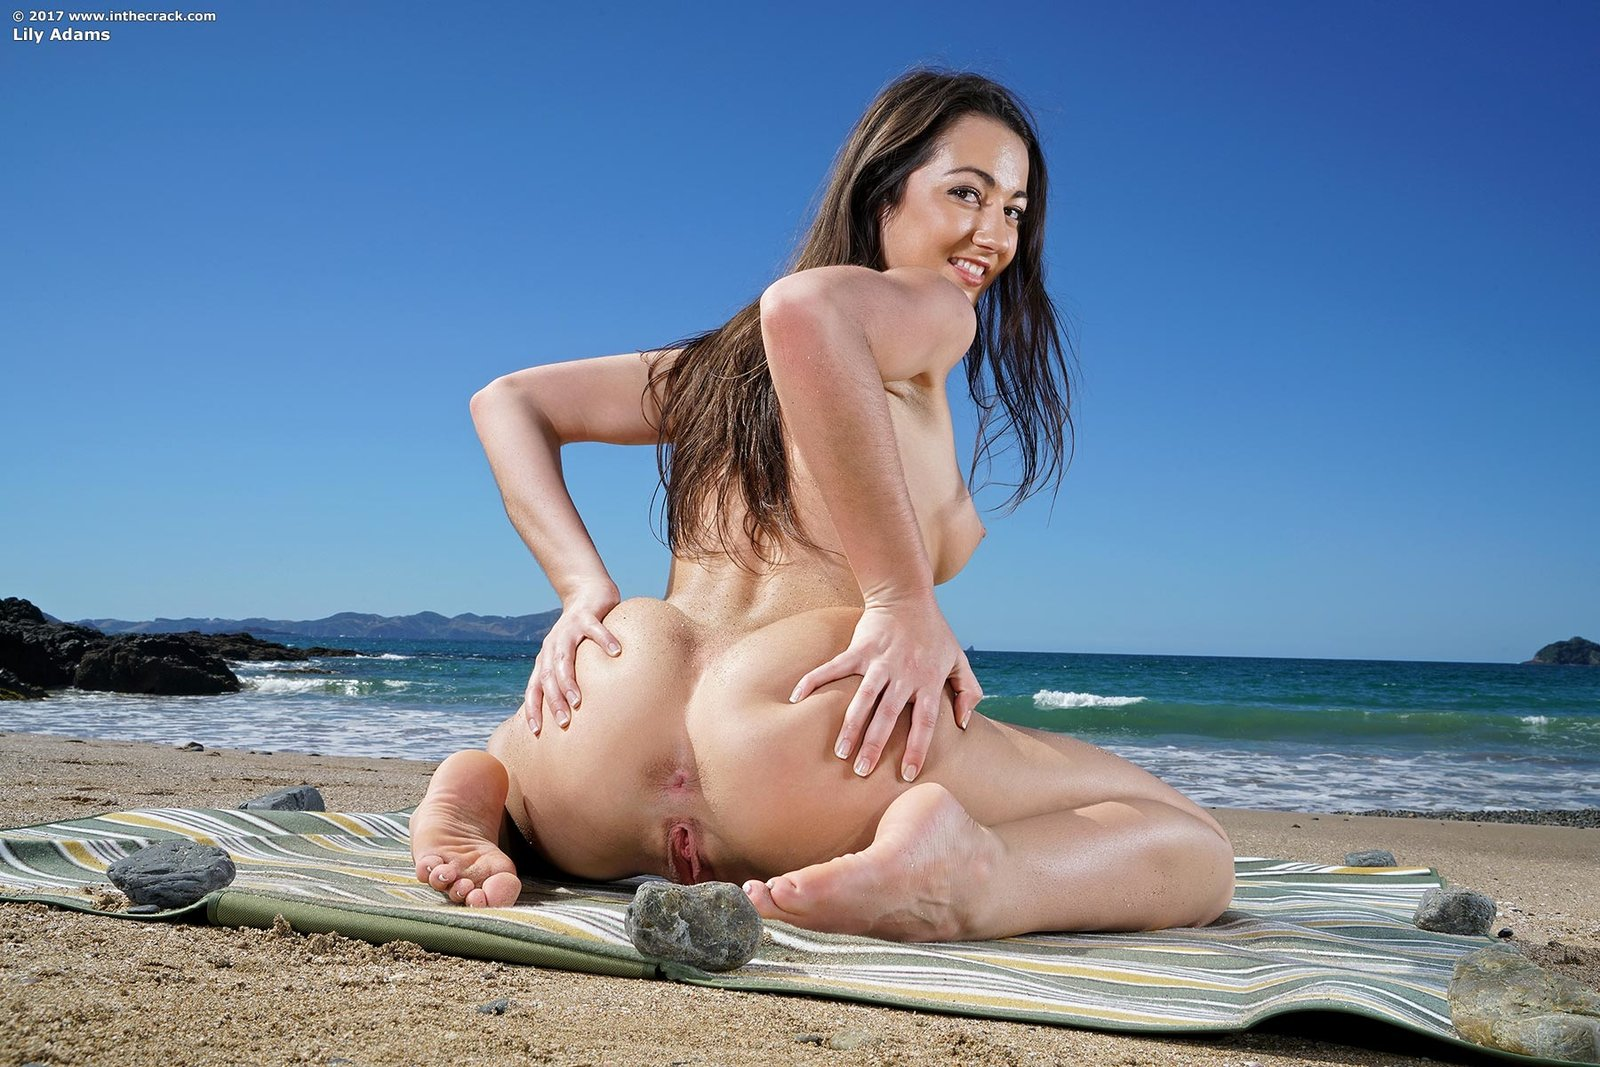 Lily Adams In Beachside Spreads By In The Crack 15 Photos -2695